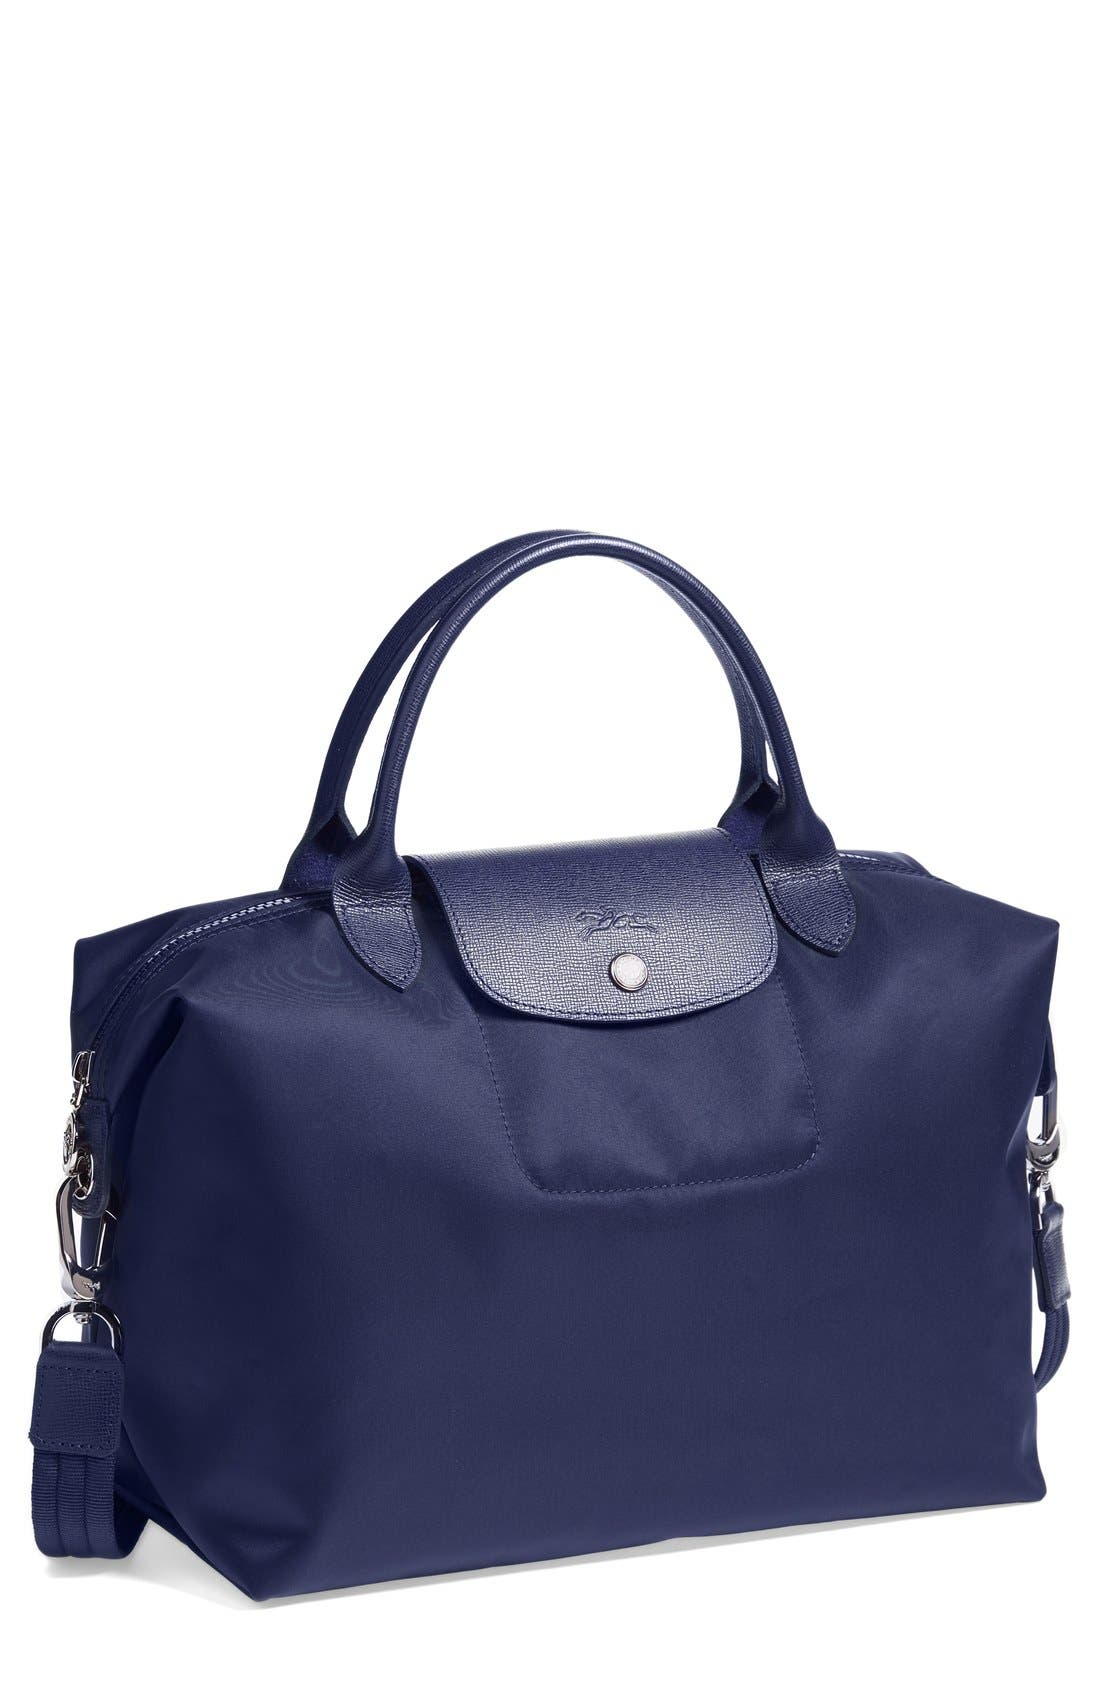 Longchamp 'Medium Le Pliage Neo' Nylon Tote